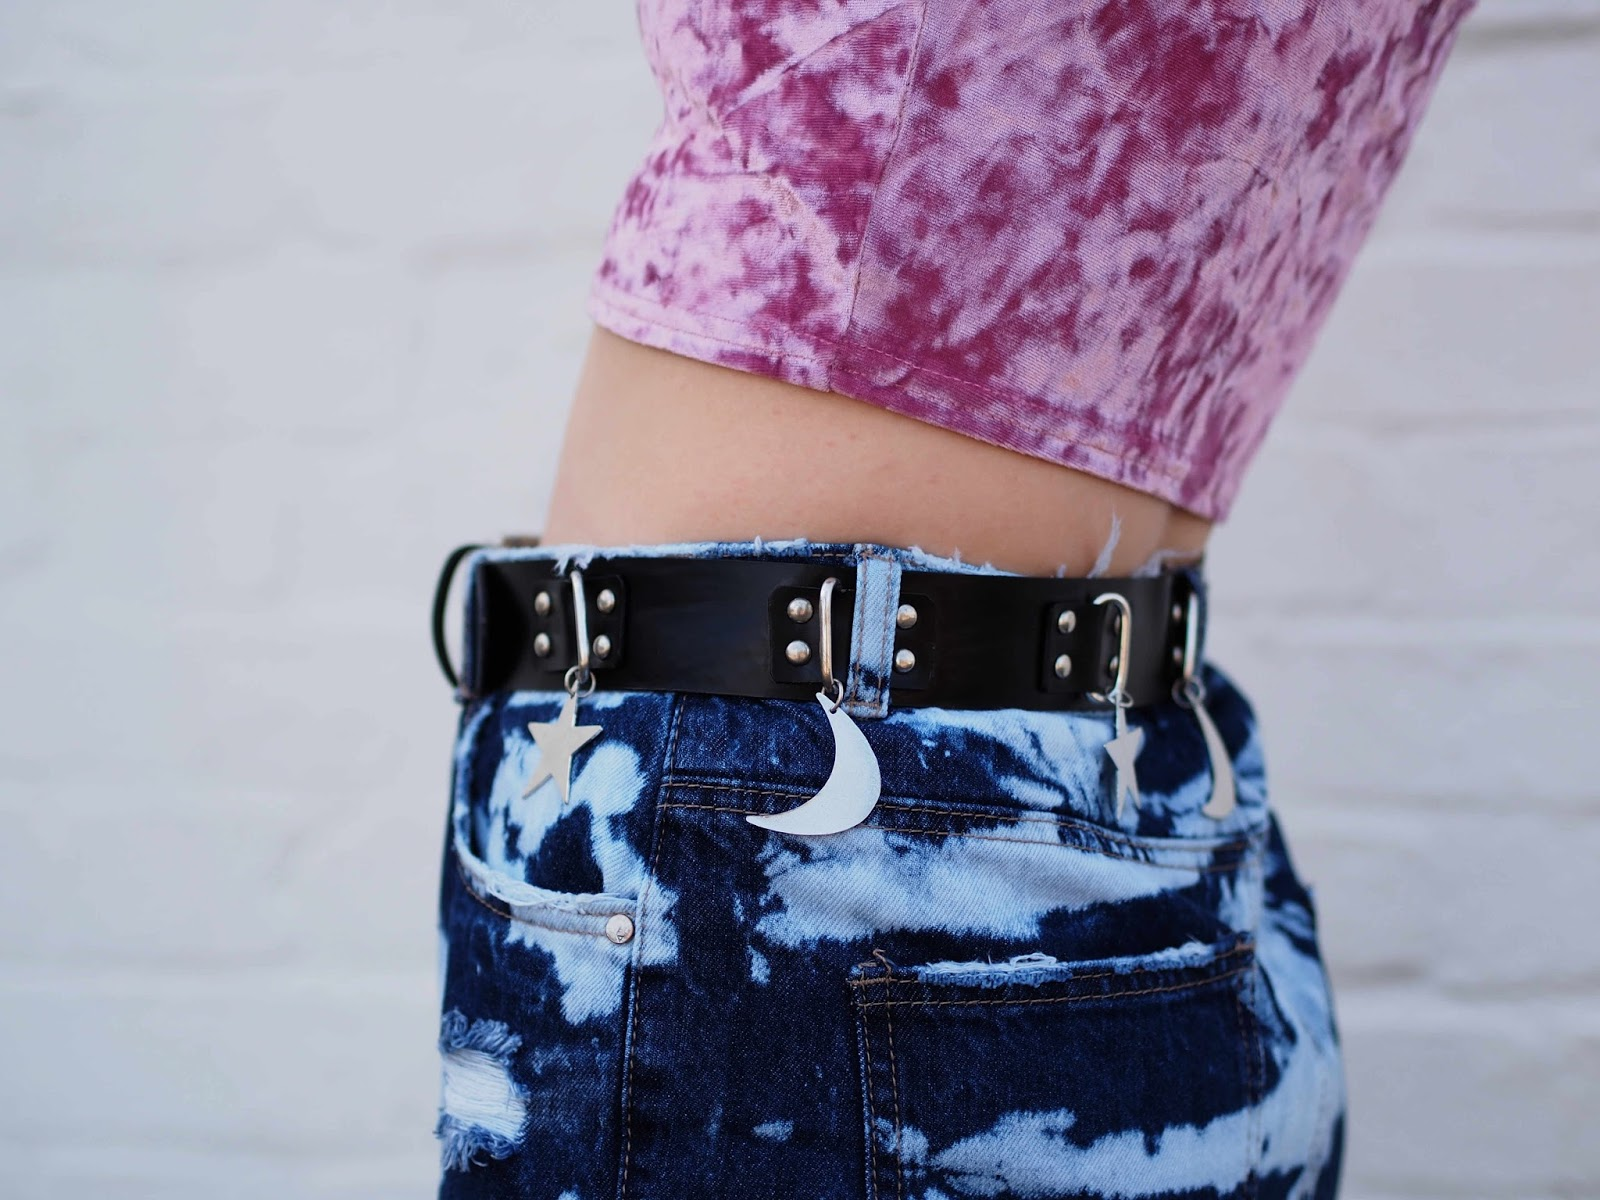 acid wash jeans, ripped jeans, extreme ripped jeans, ripped mom jeans, neck tie, old skool vans platform, statement earrings, summer grunge outfit, pink velvet crop top 6